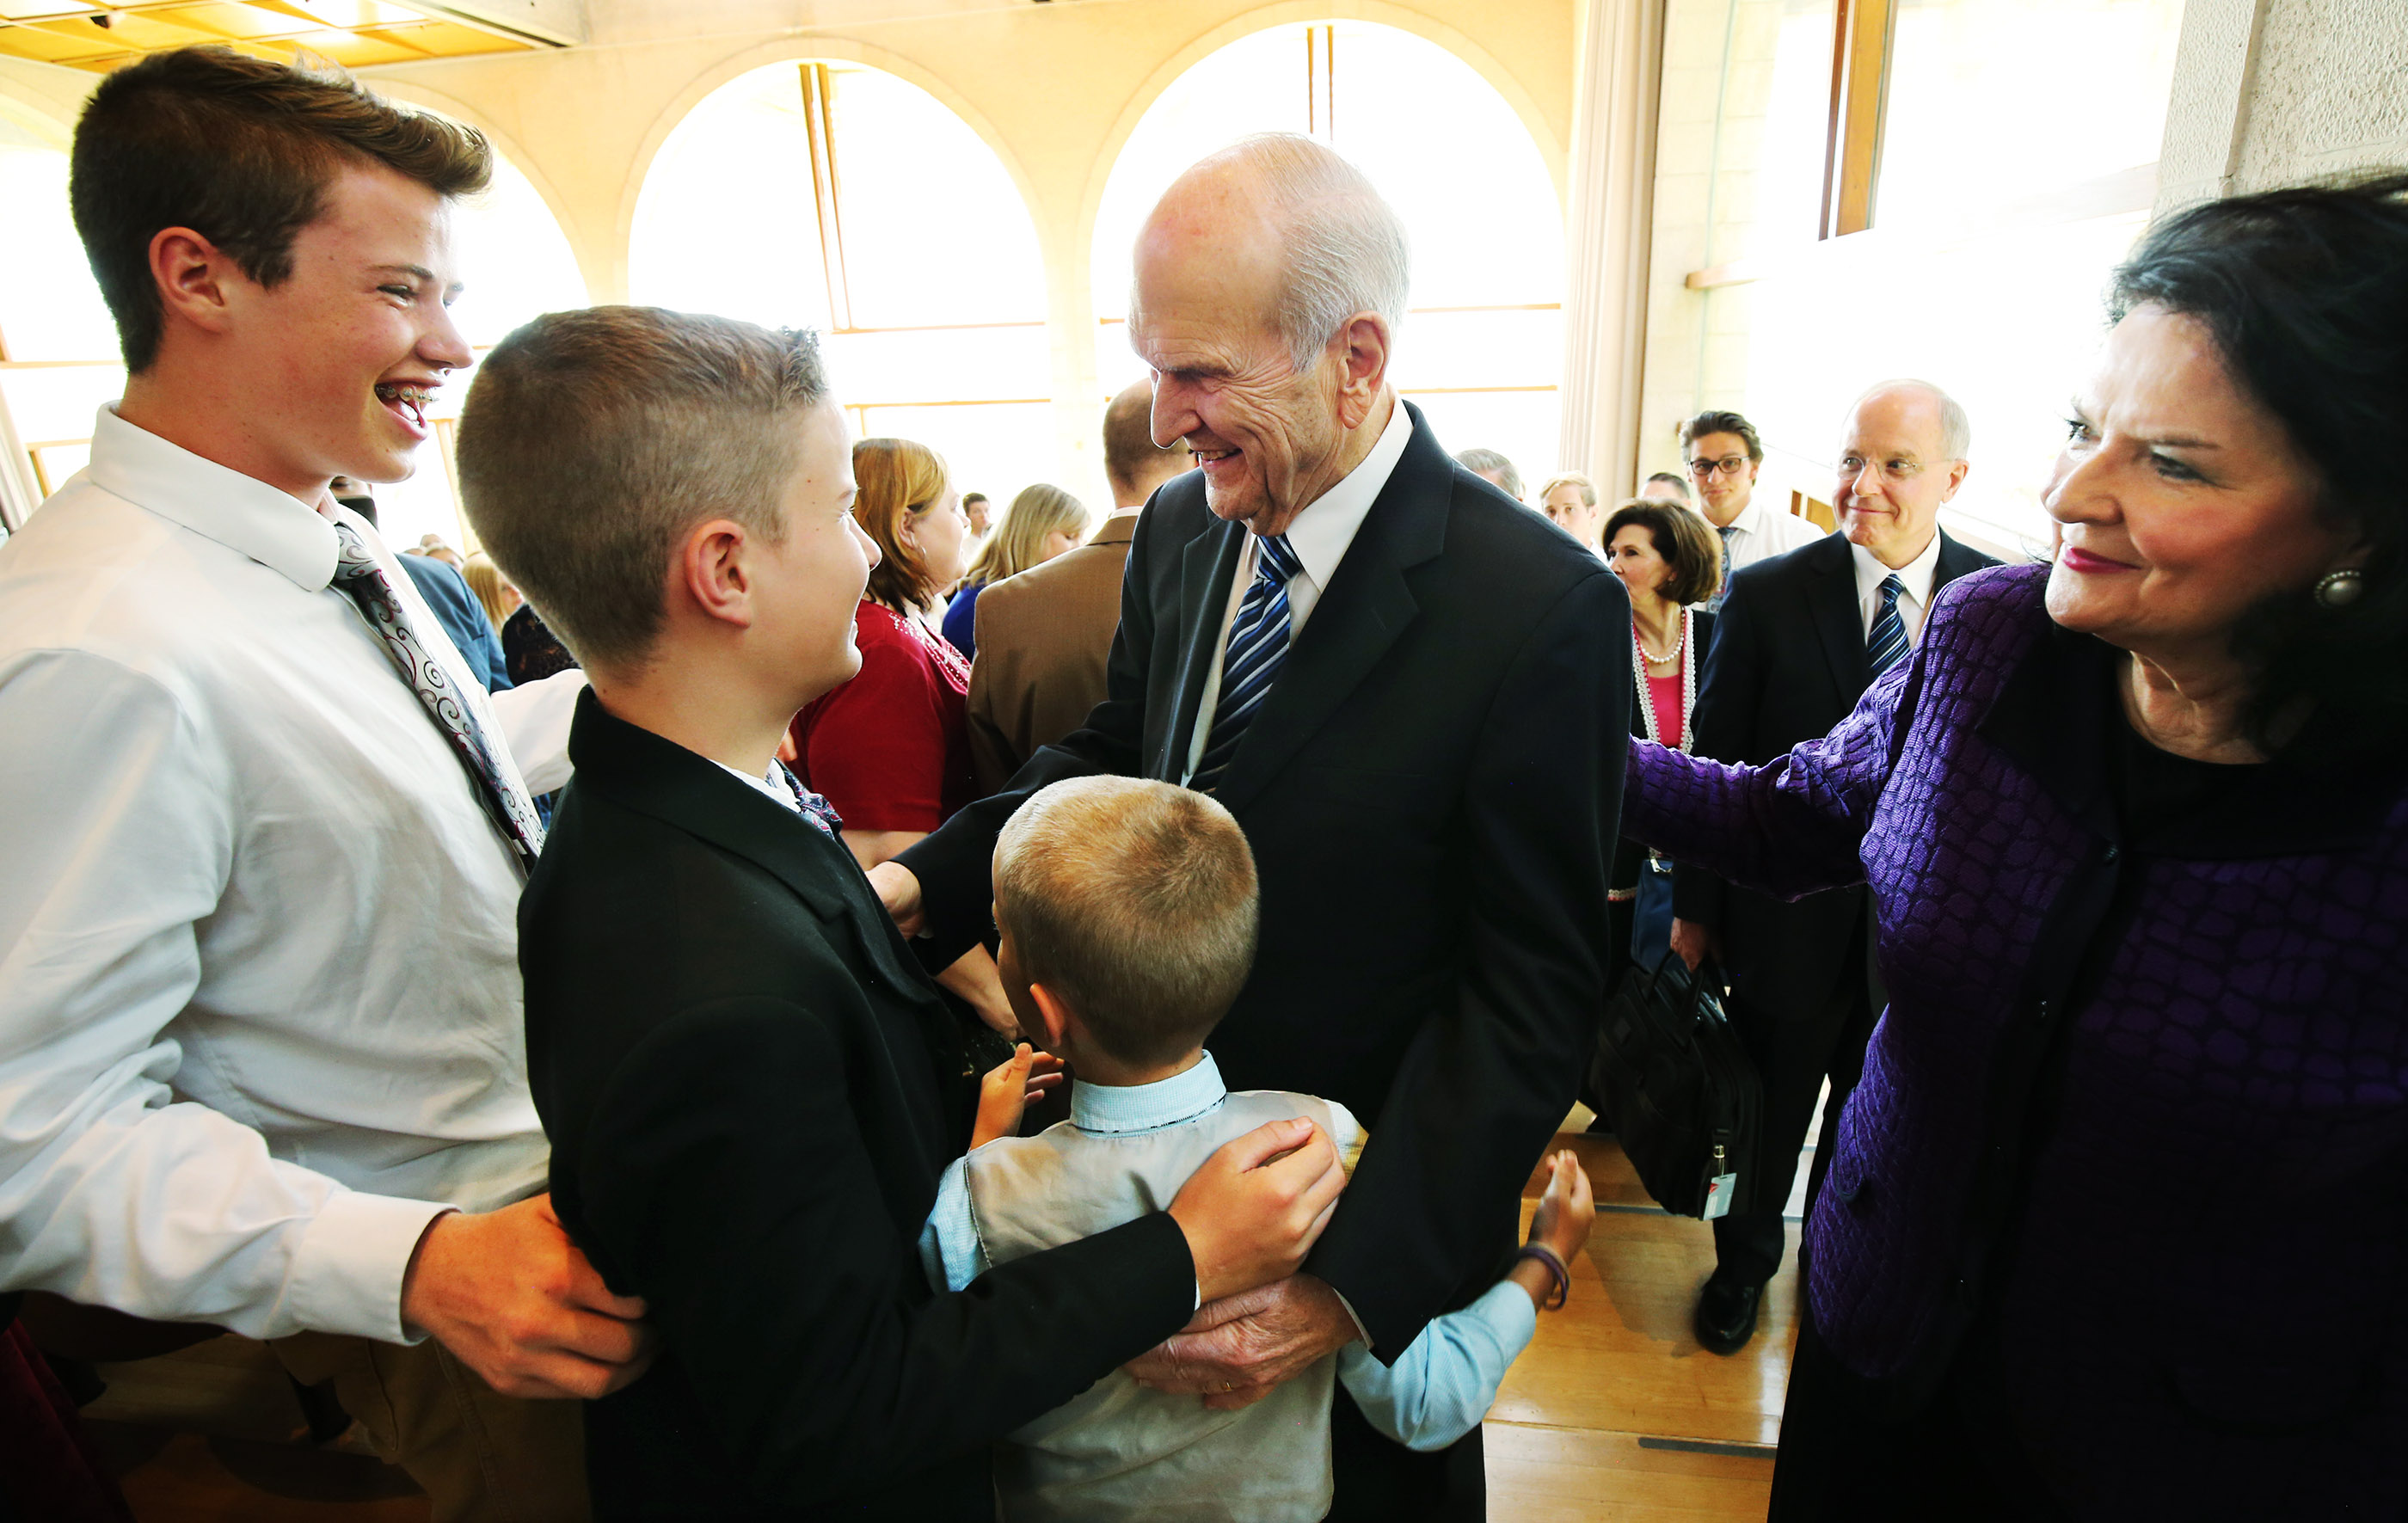 President Russell M. Nelson, president of The Church of Jesus Christ of Latter-day Saints, and his wife, Sister Wendy Nelson, talk with brothers James , Paul and and Adam Howell after speaking during Jerusalem District Conference at the BYU Jerusalem Center in Jerusalem on Saturday, April 14, 2018.